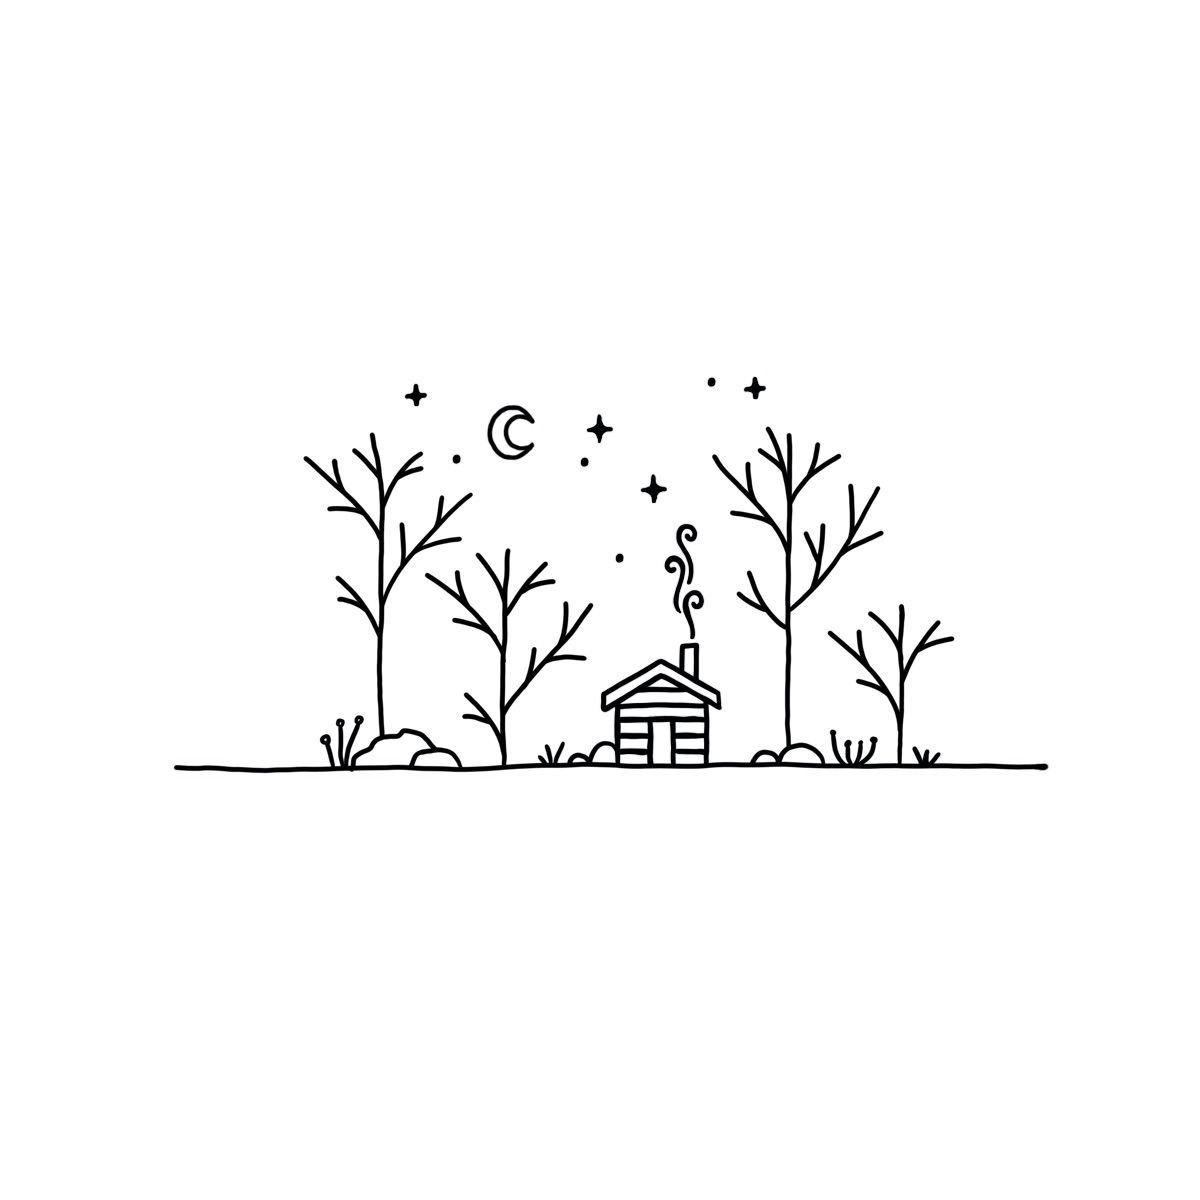 Cabin doodle - Outdoors doodle - Doodle -  Trees, woods, nature and cabin doodle by Dumont Design  - #Cabin #doodle #oldschoolTattooGraphic #Outdoors #TattooGraphicarm #TattooGraphicbird #TattooGraphicdesignideas #TattooGraphicdesigners #TattooGraphicgirl #TattooGraphicnature